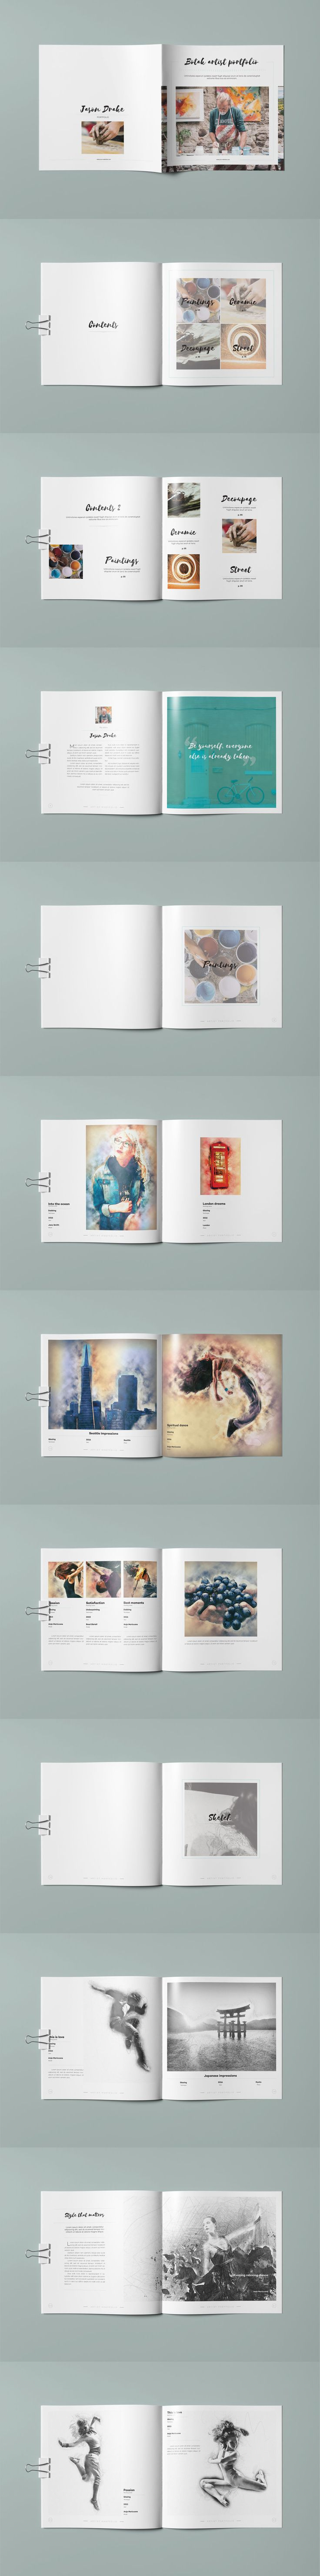 Clean Brochure for Universal Artistical Content - Template Adobe InDesign INDD